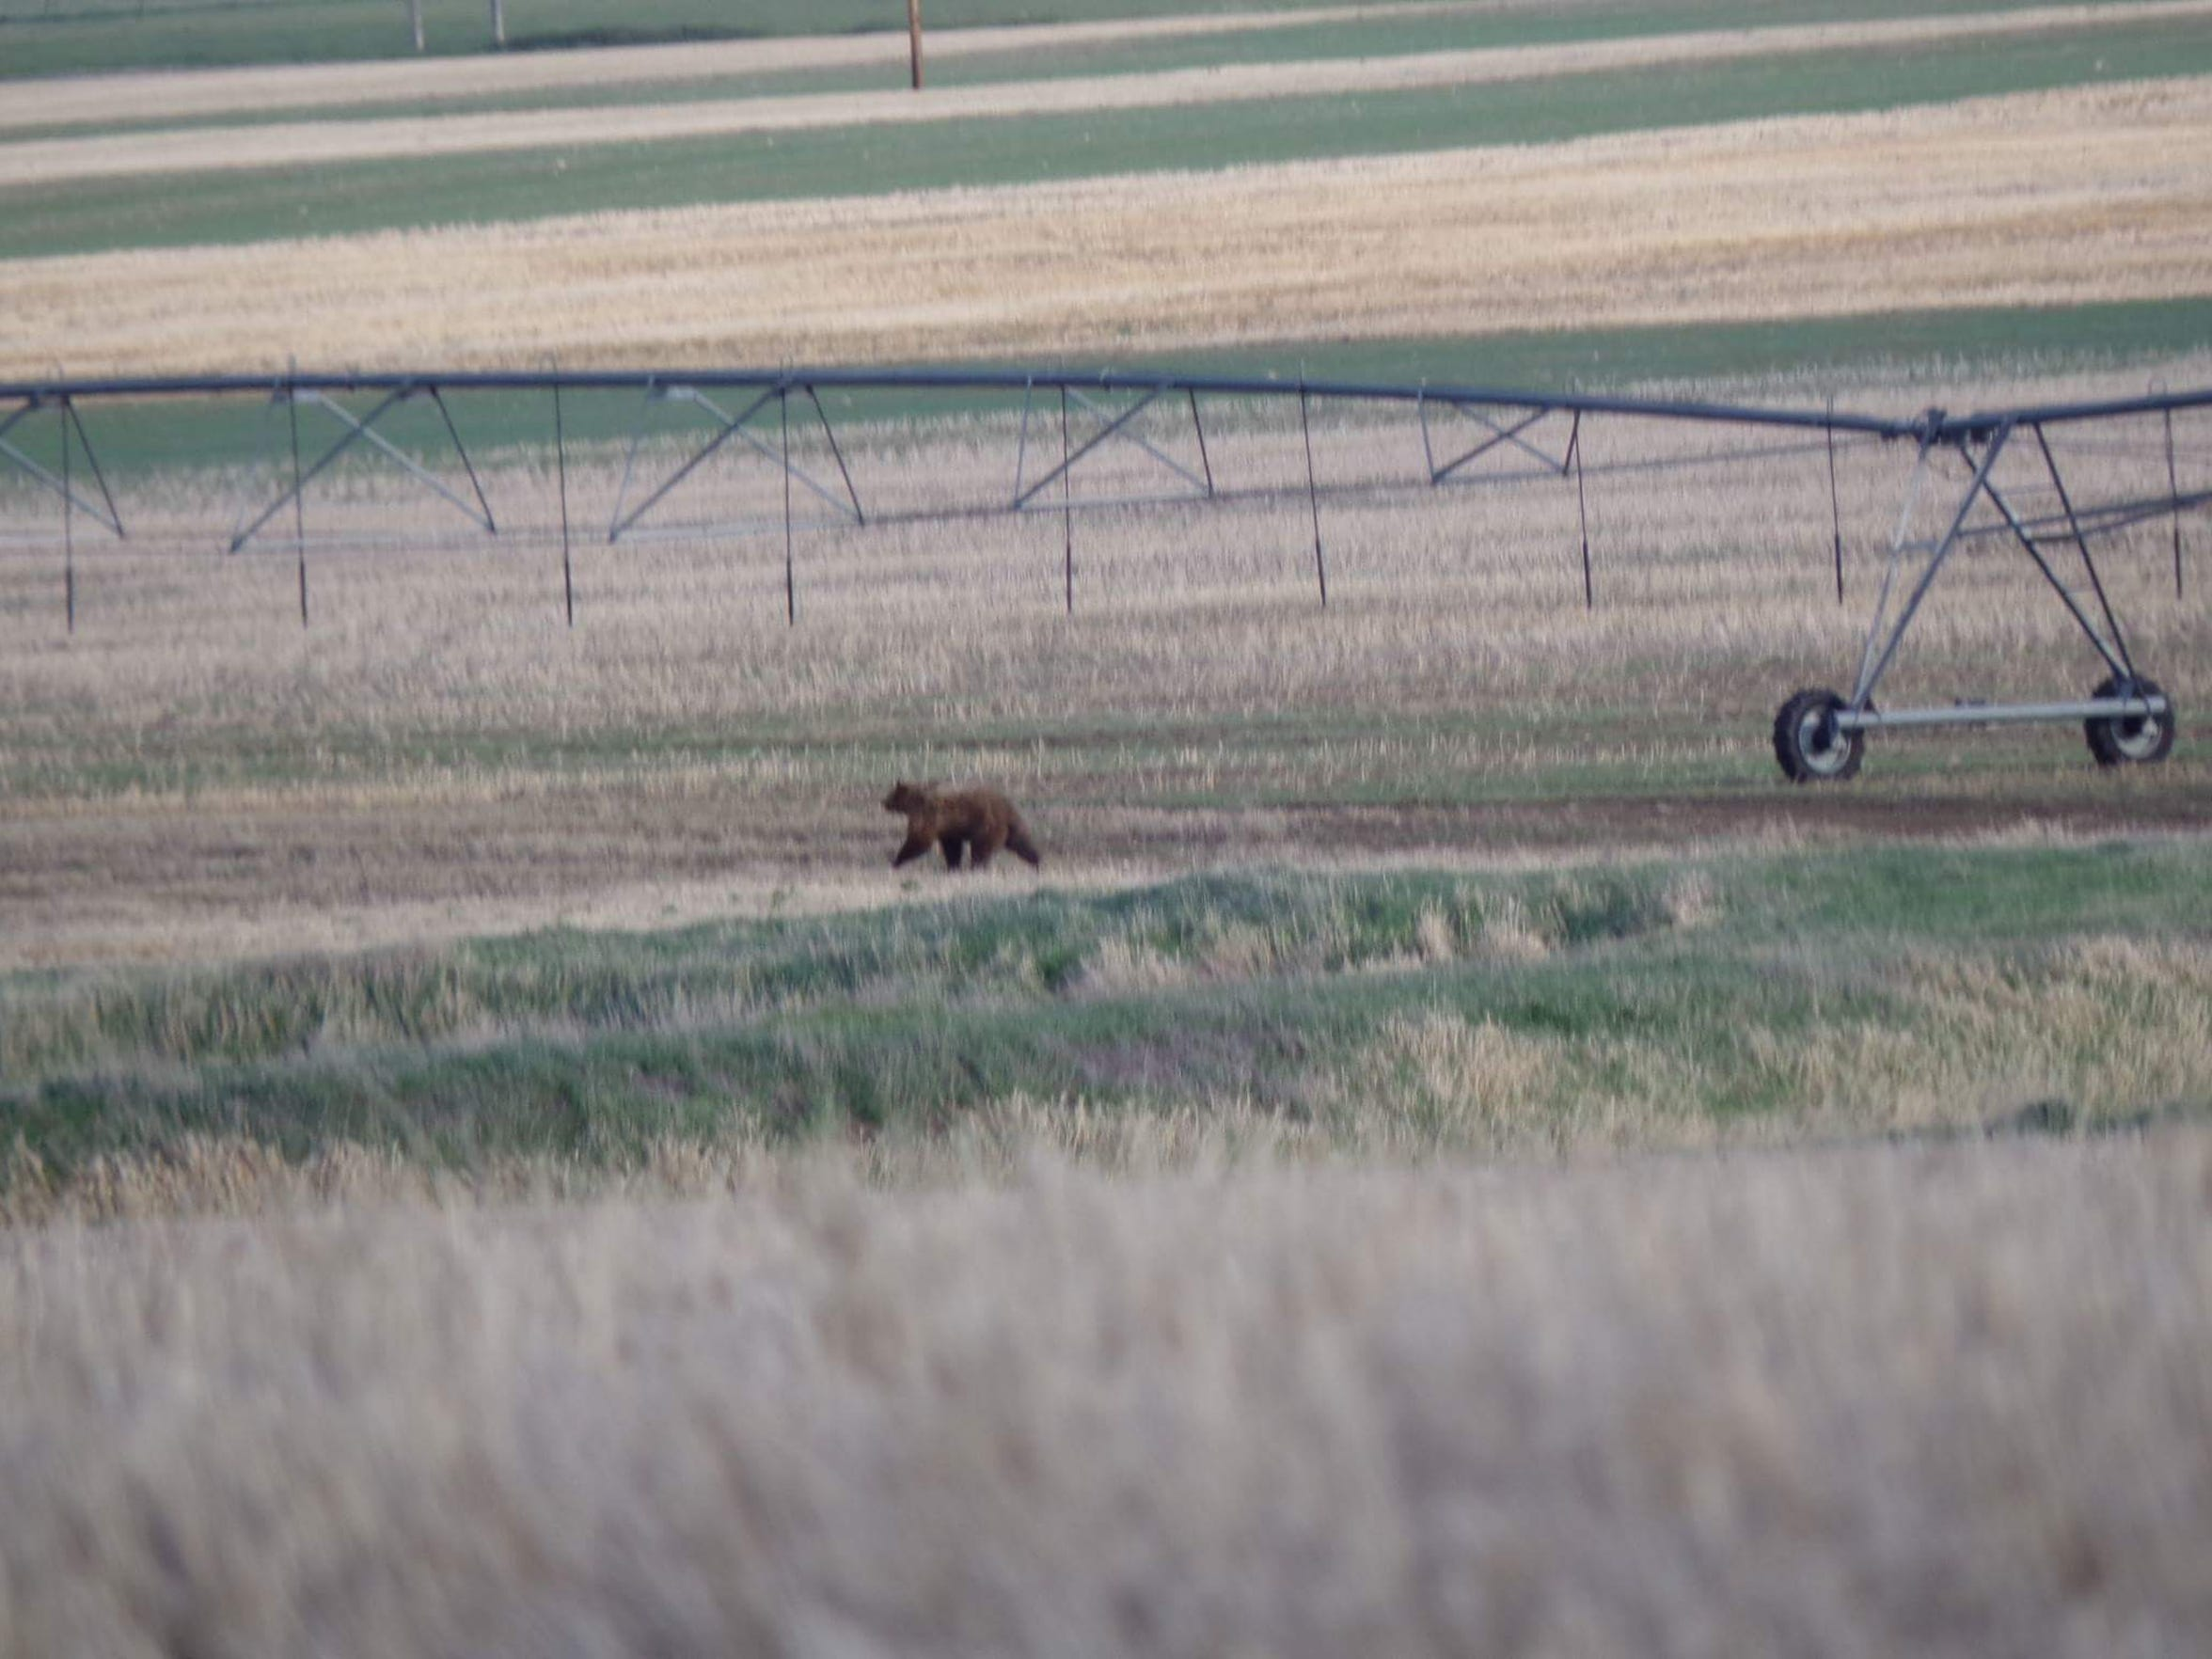 This grizzly was spotted on the outskirts of Conrad